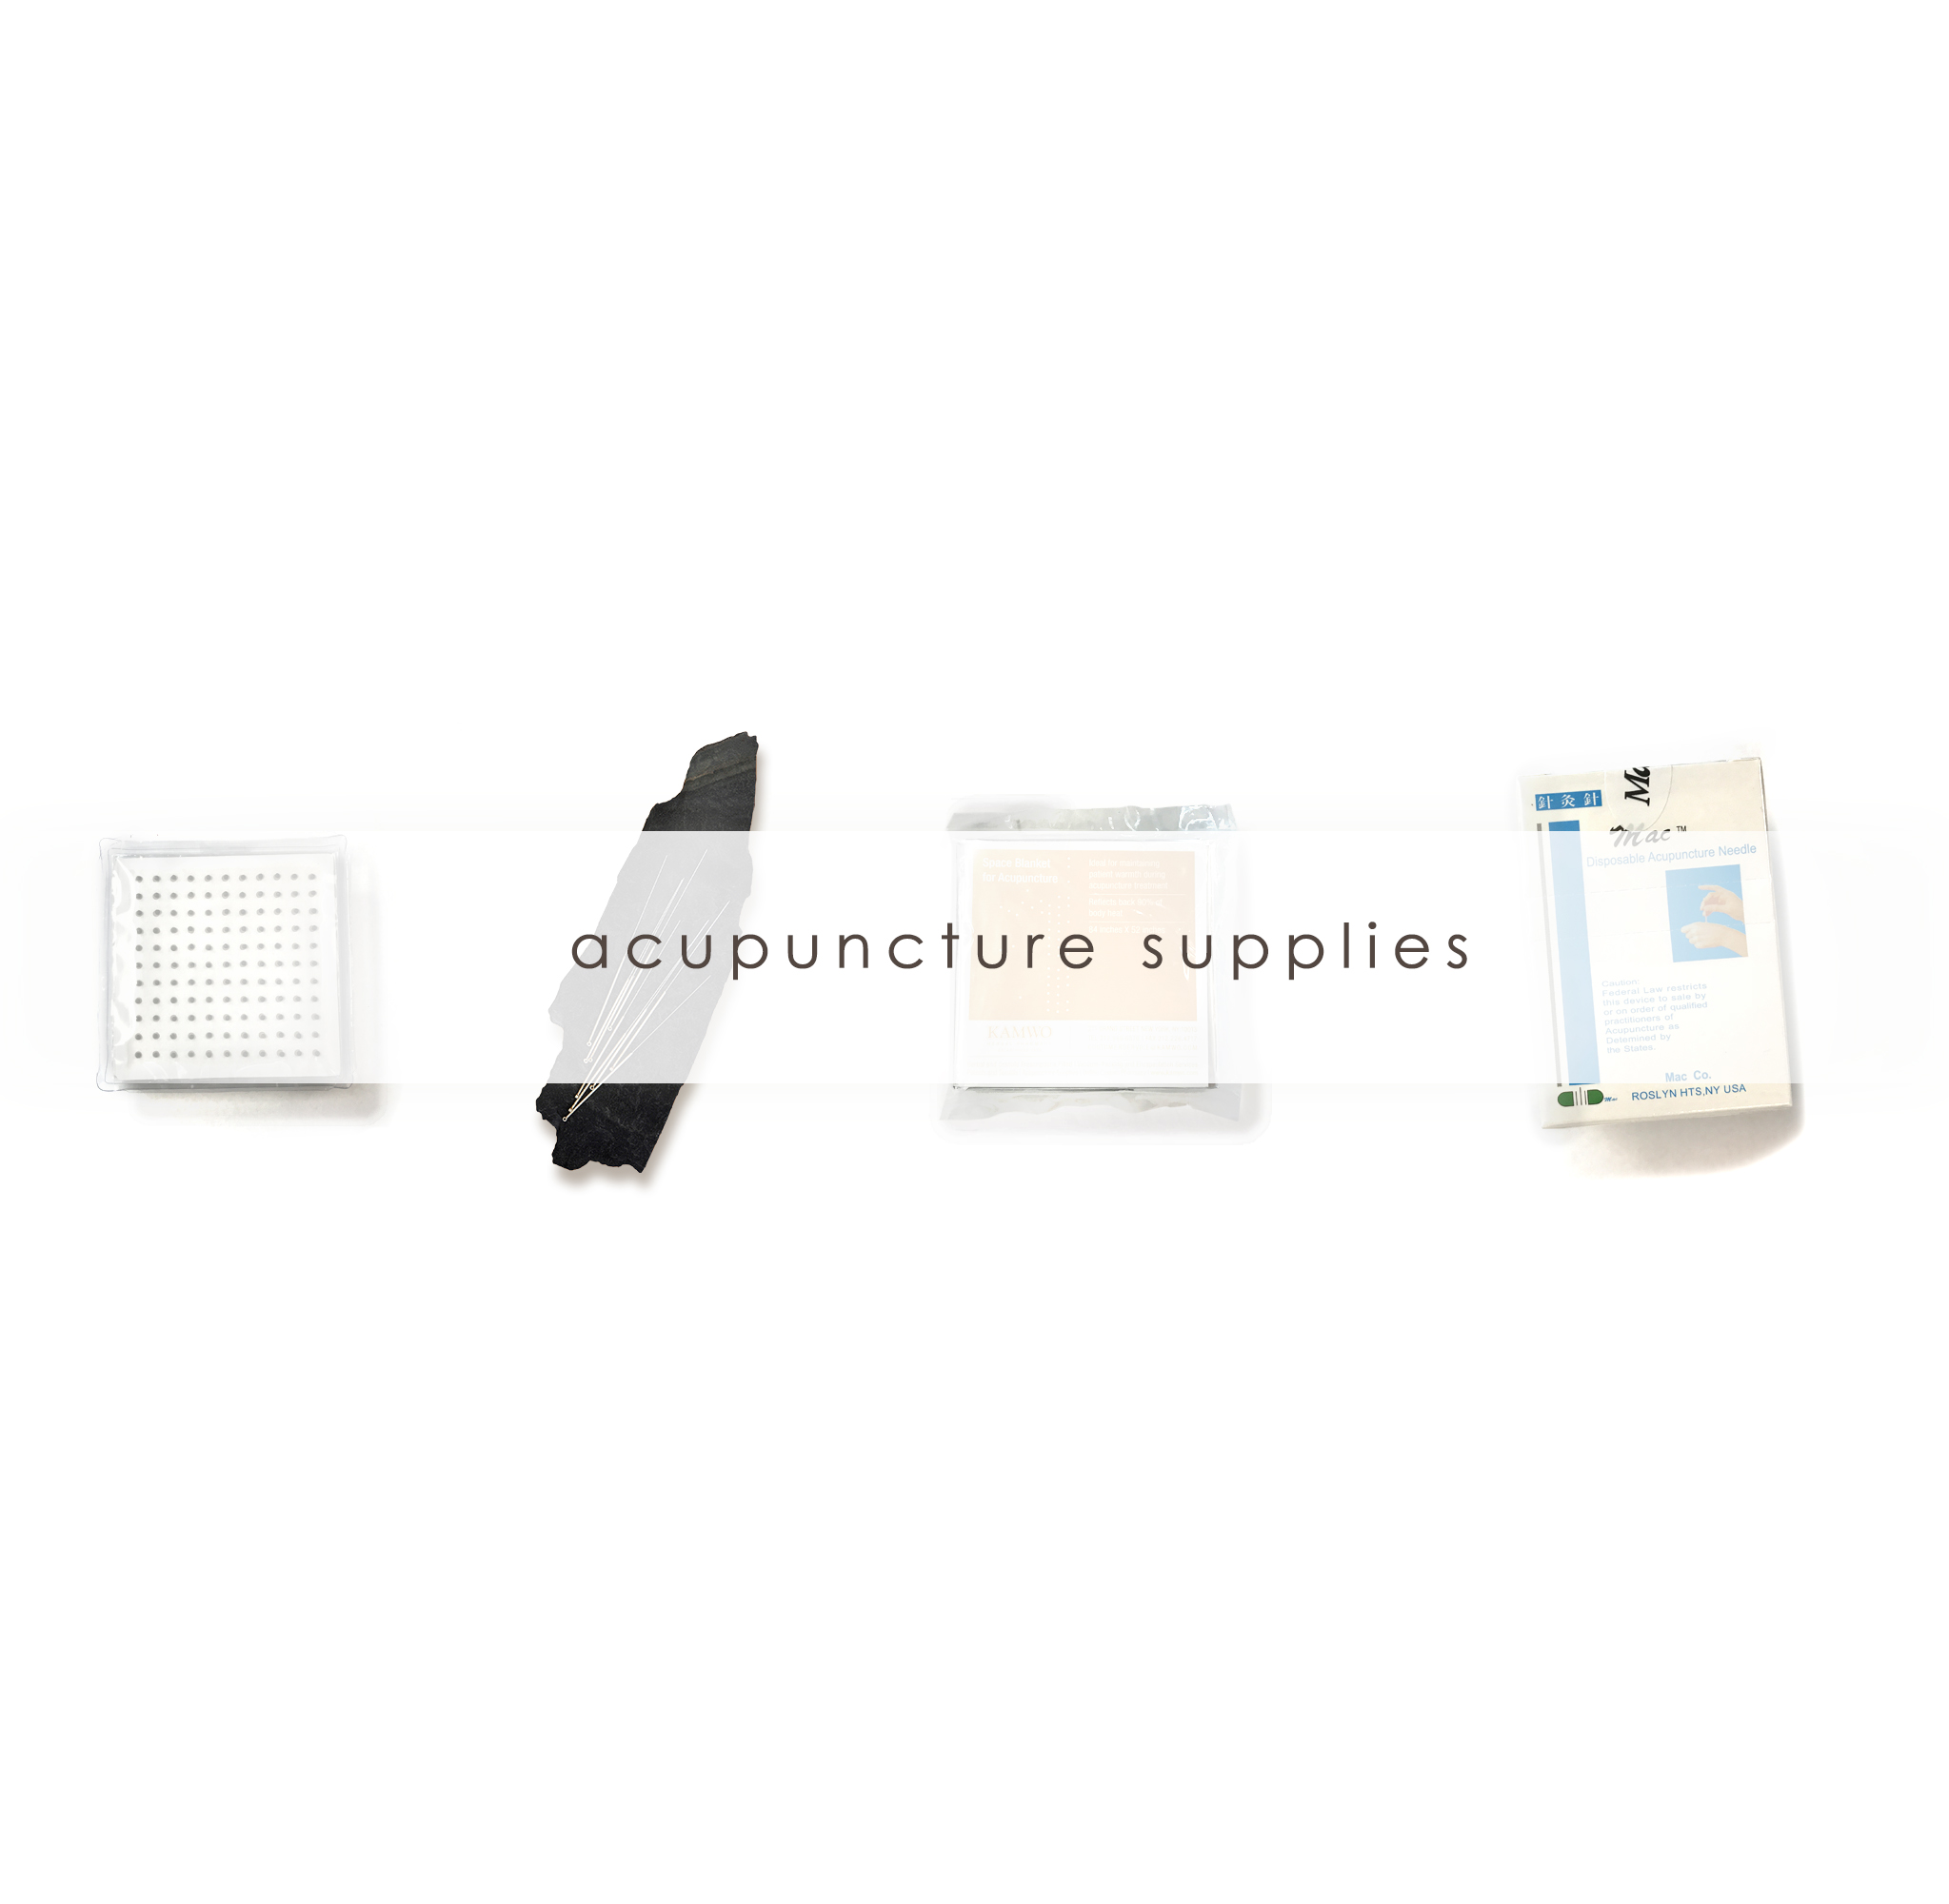 acupuncture-retail5.jpg